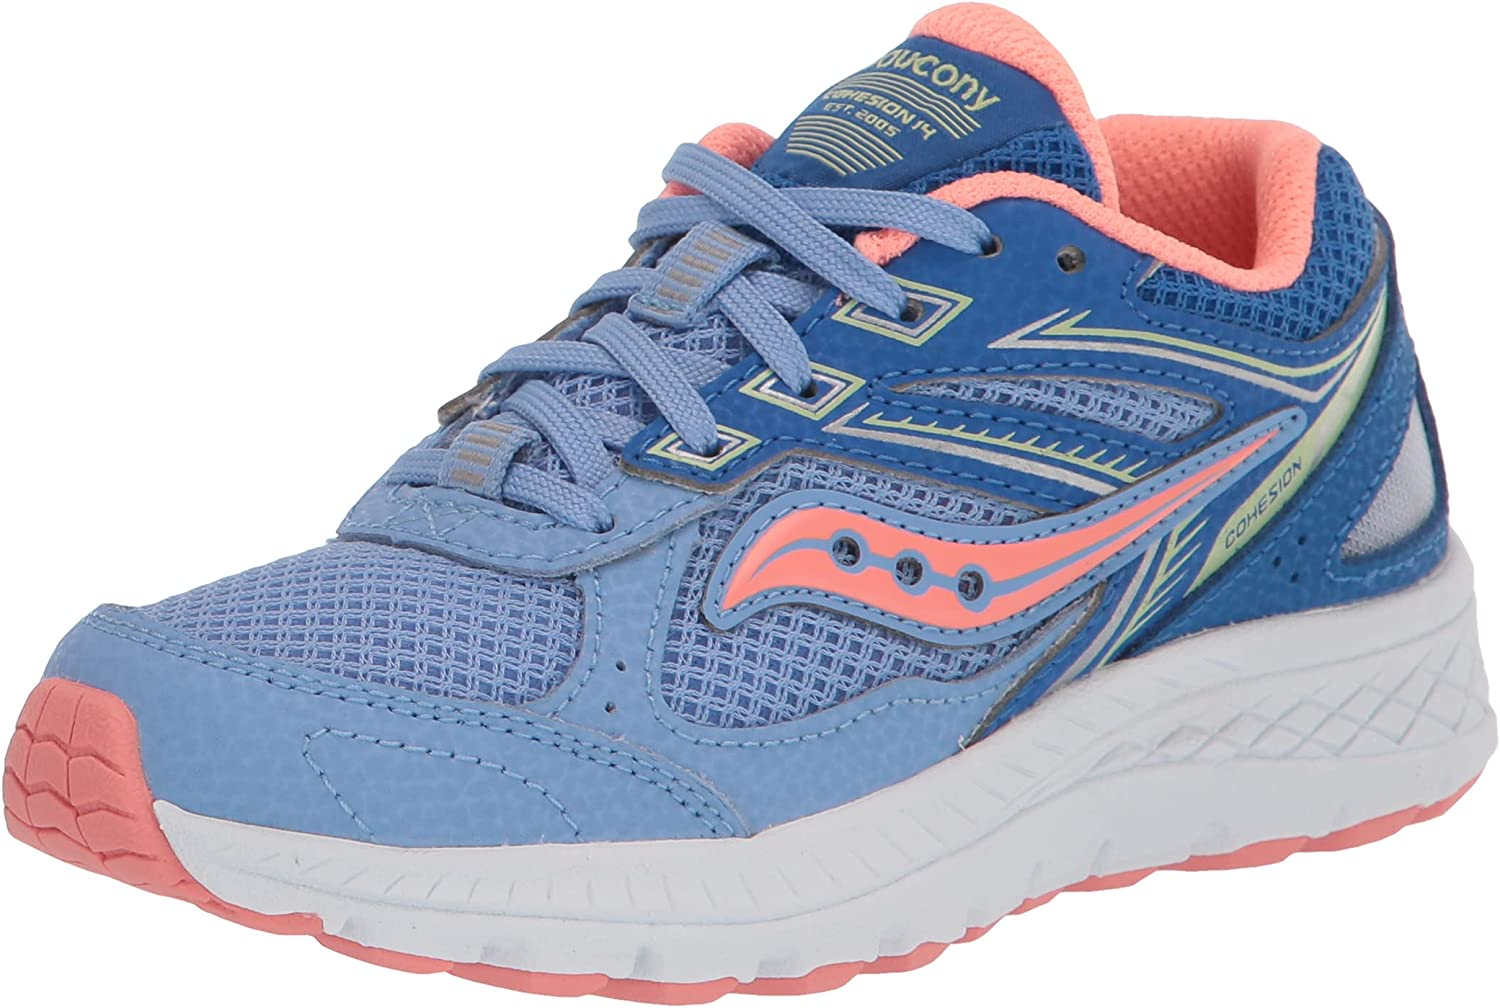 Saucony Cohesion 14 LACE to Toe Running Shoe, Blue/Coral, 3.5 US Unisex Big Kid